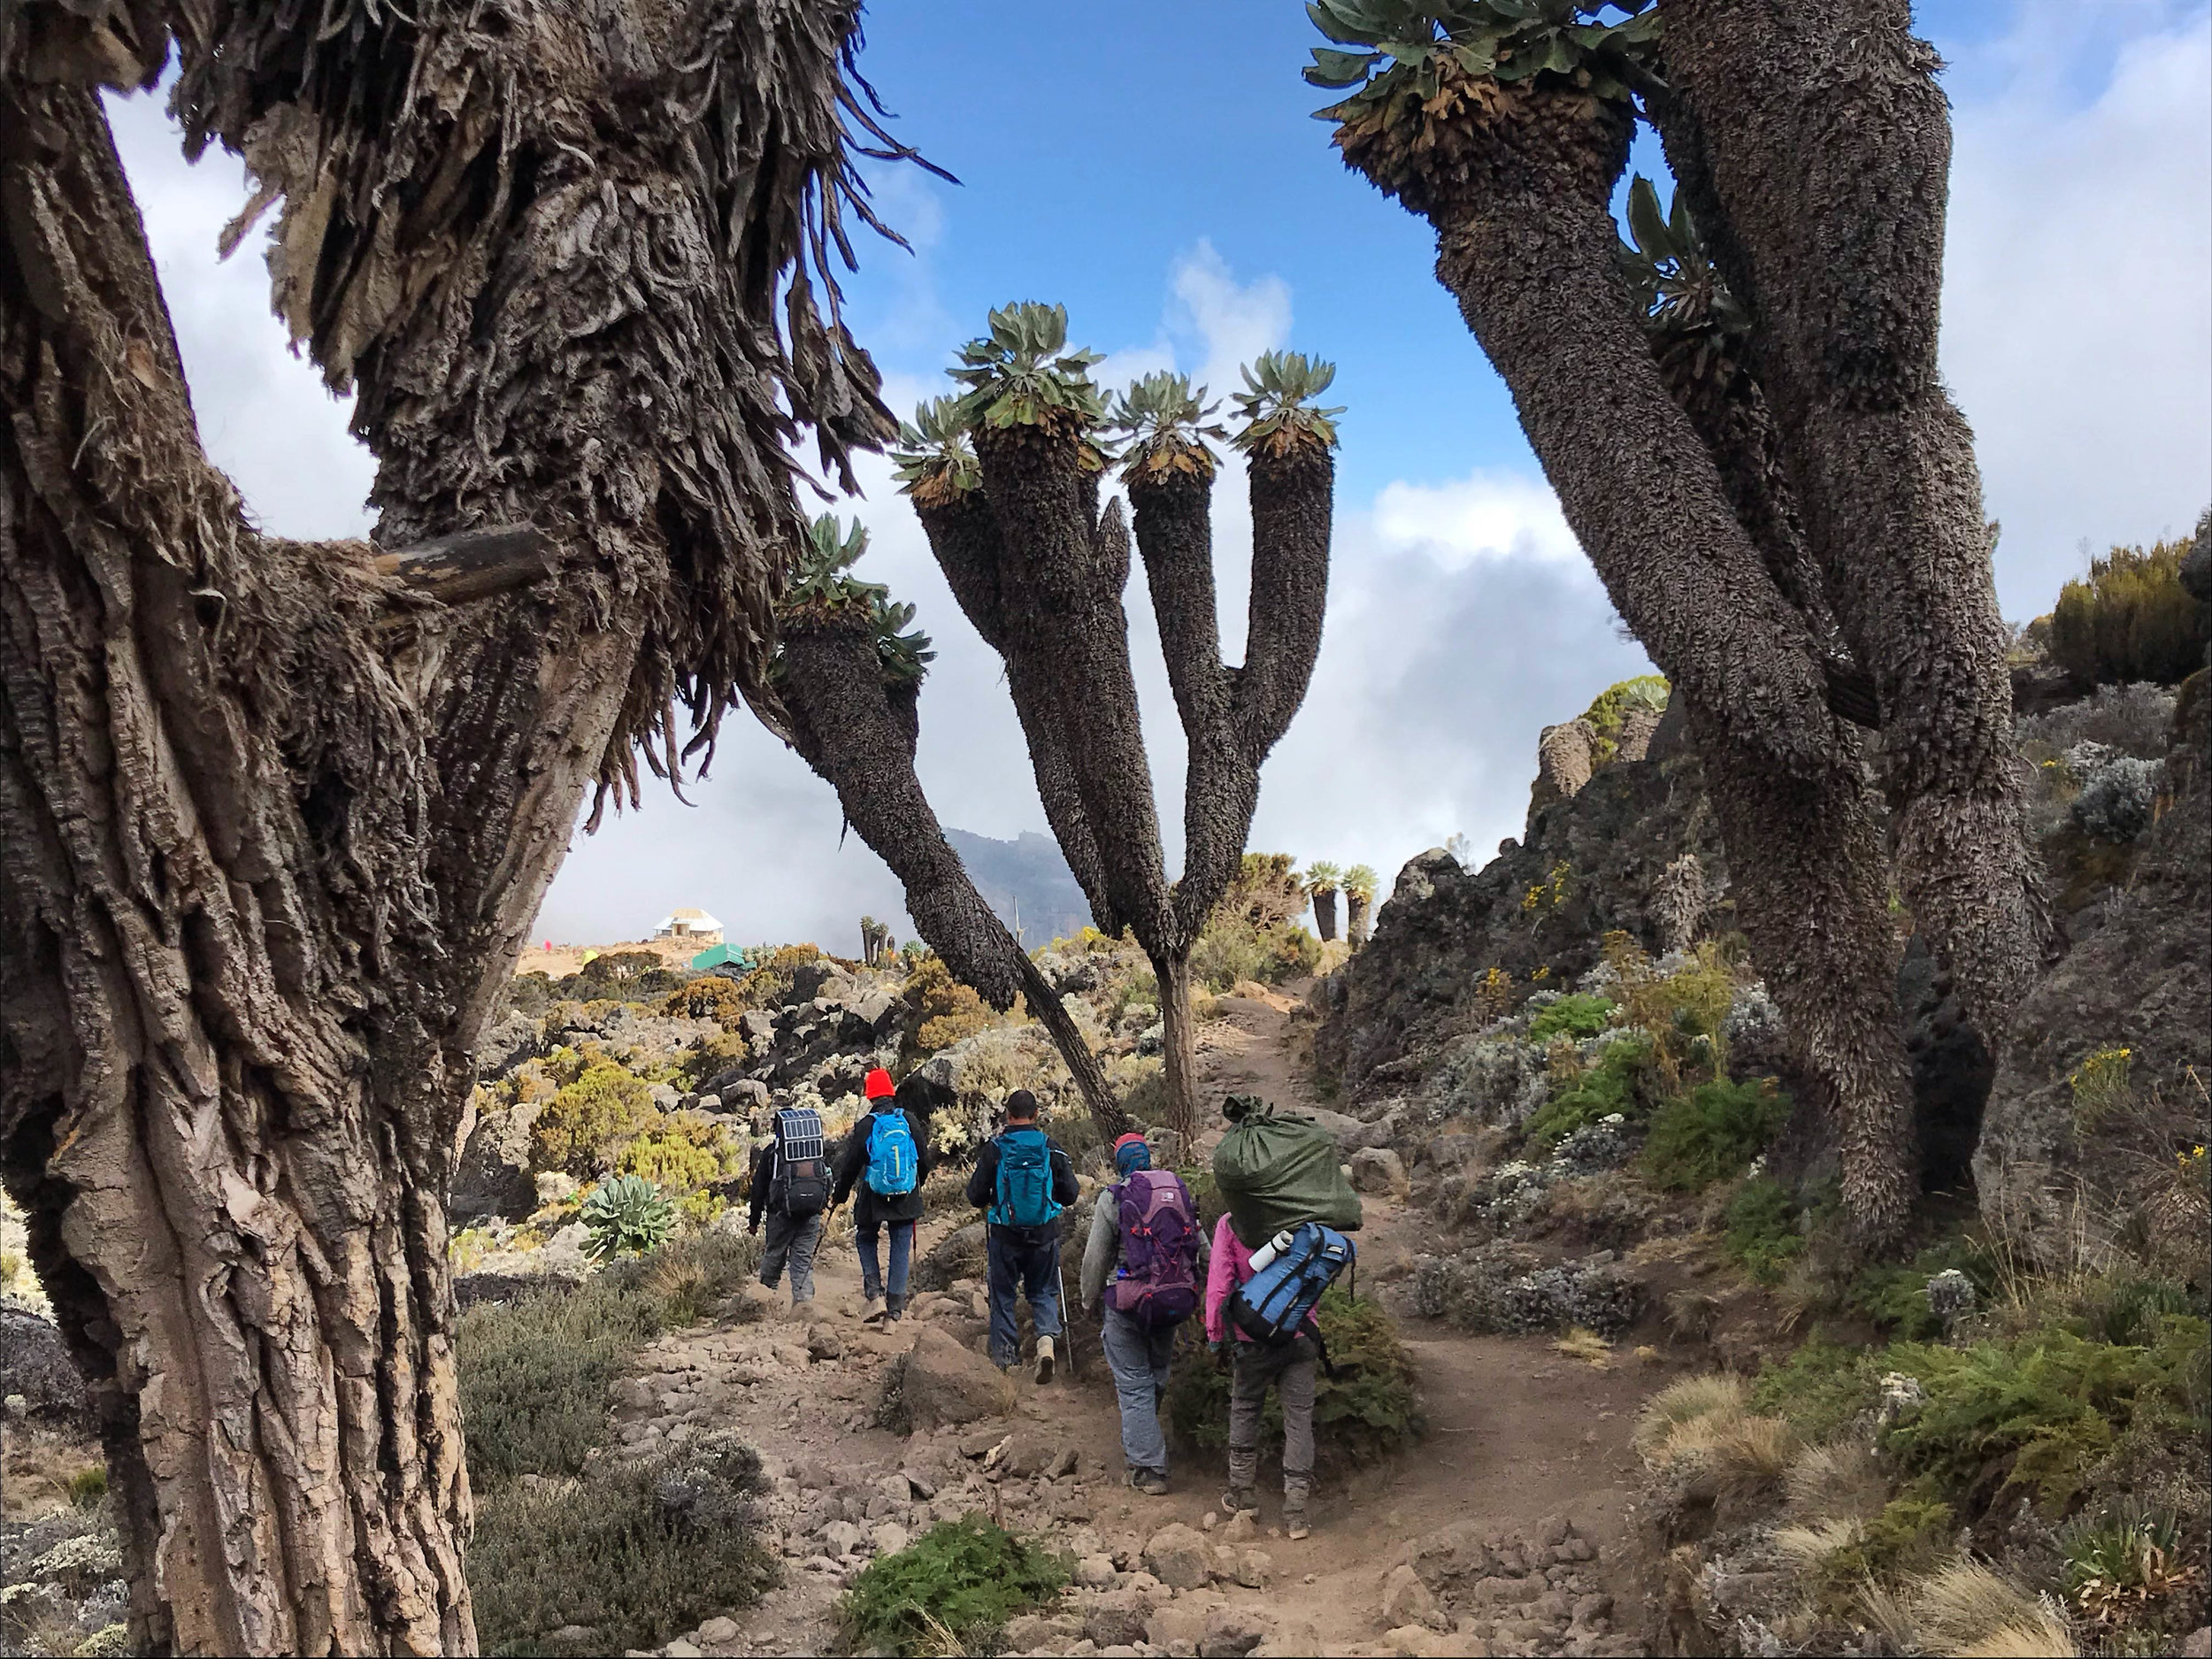 Other hikers on the trail heading into Barranco Camp surrounded by giant groundsel trees. This particular tree is only found on Mt Kilimanjaro and only above about 14,000 ft.